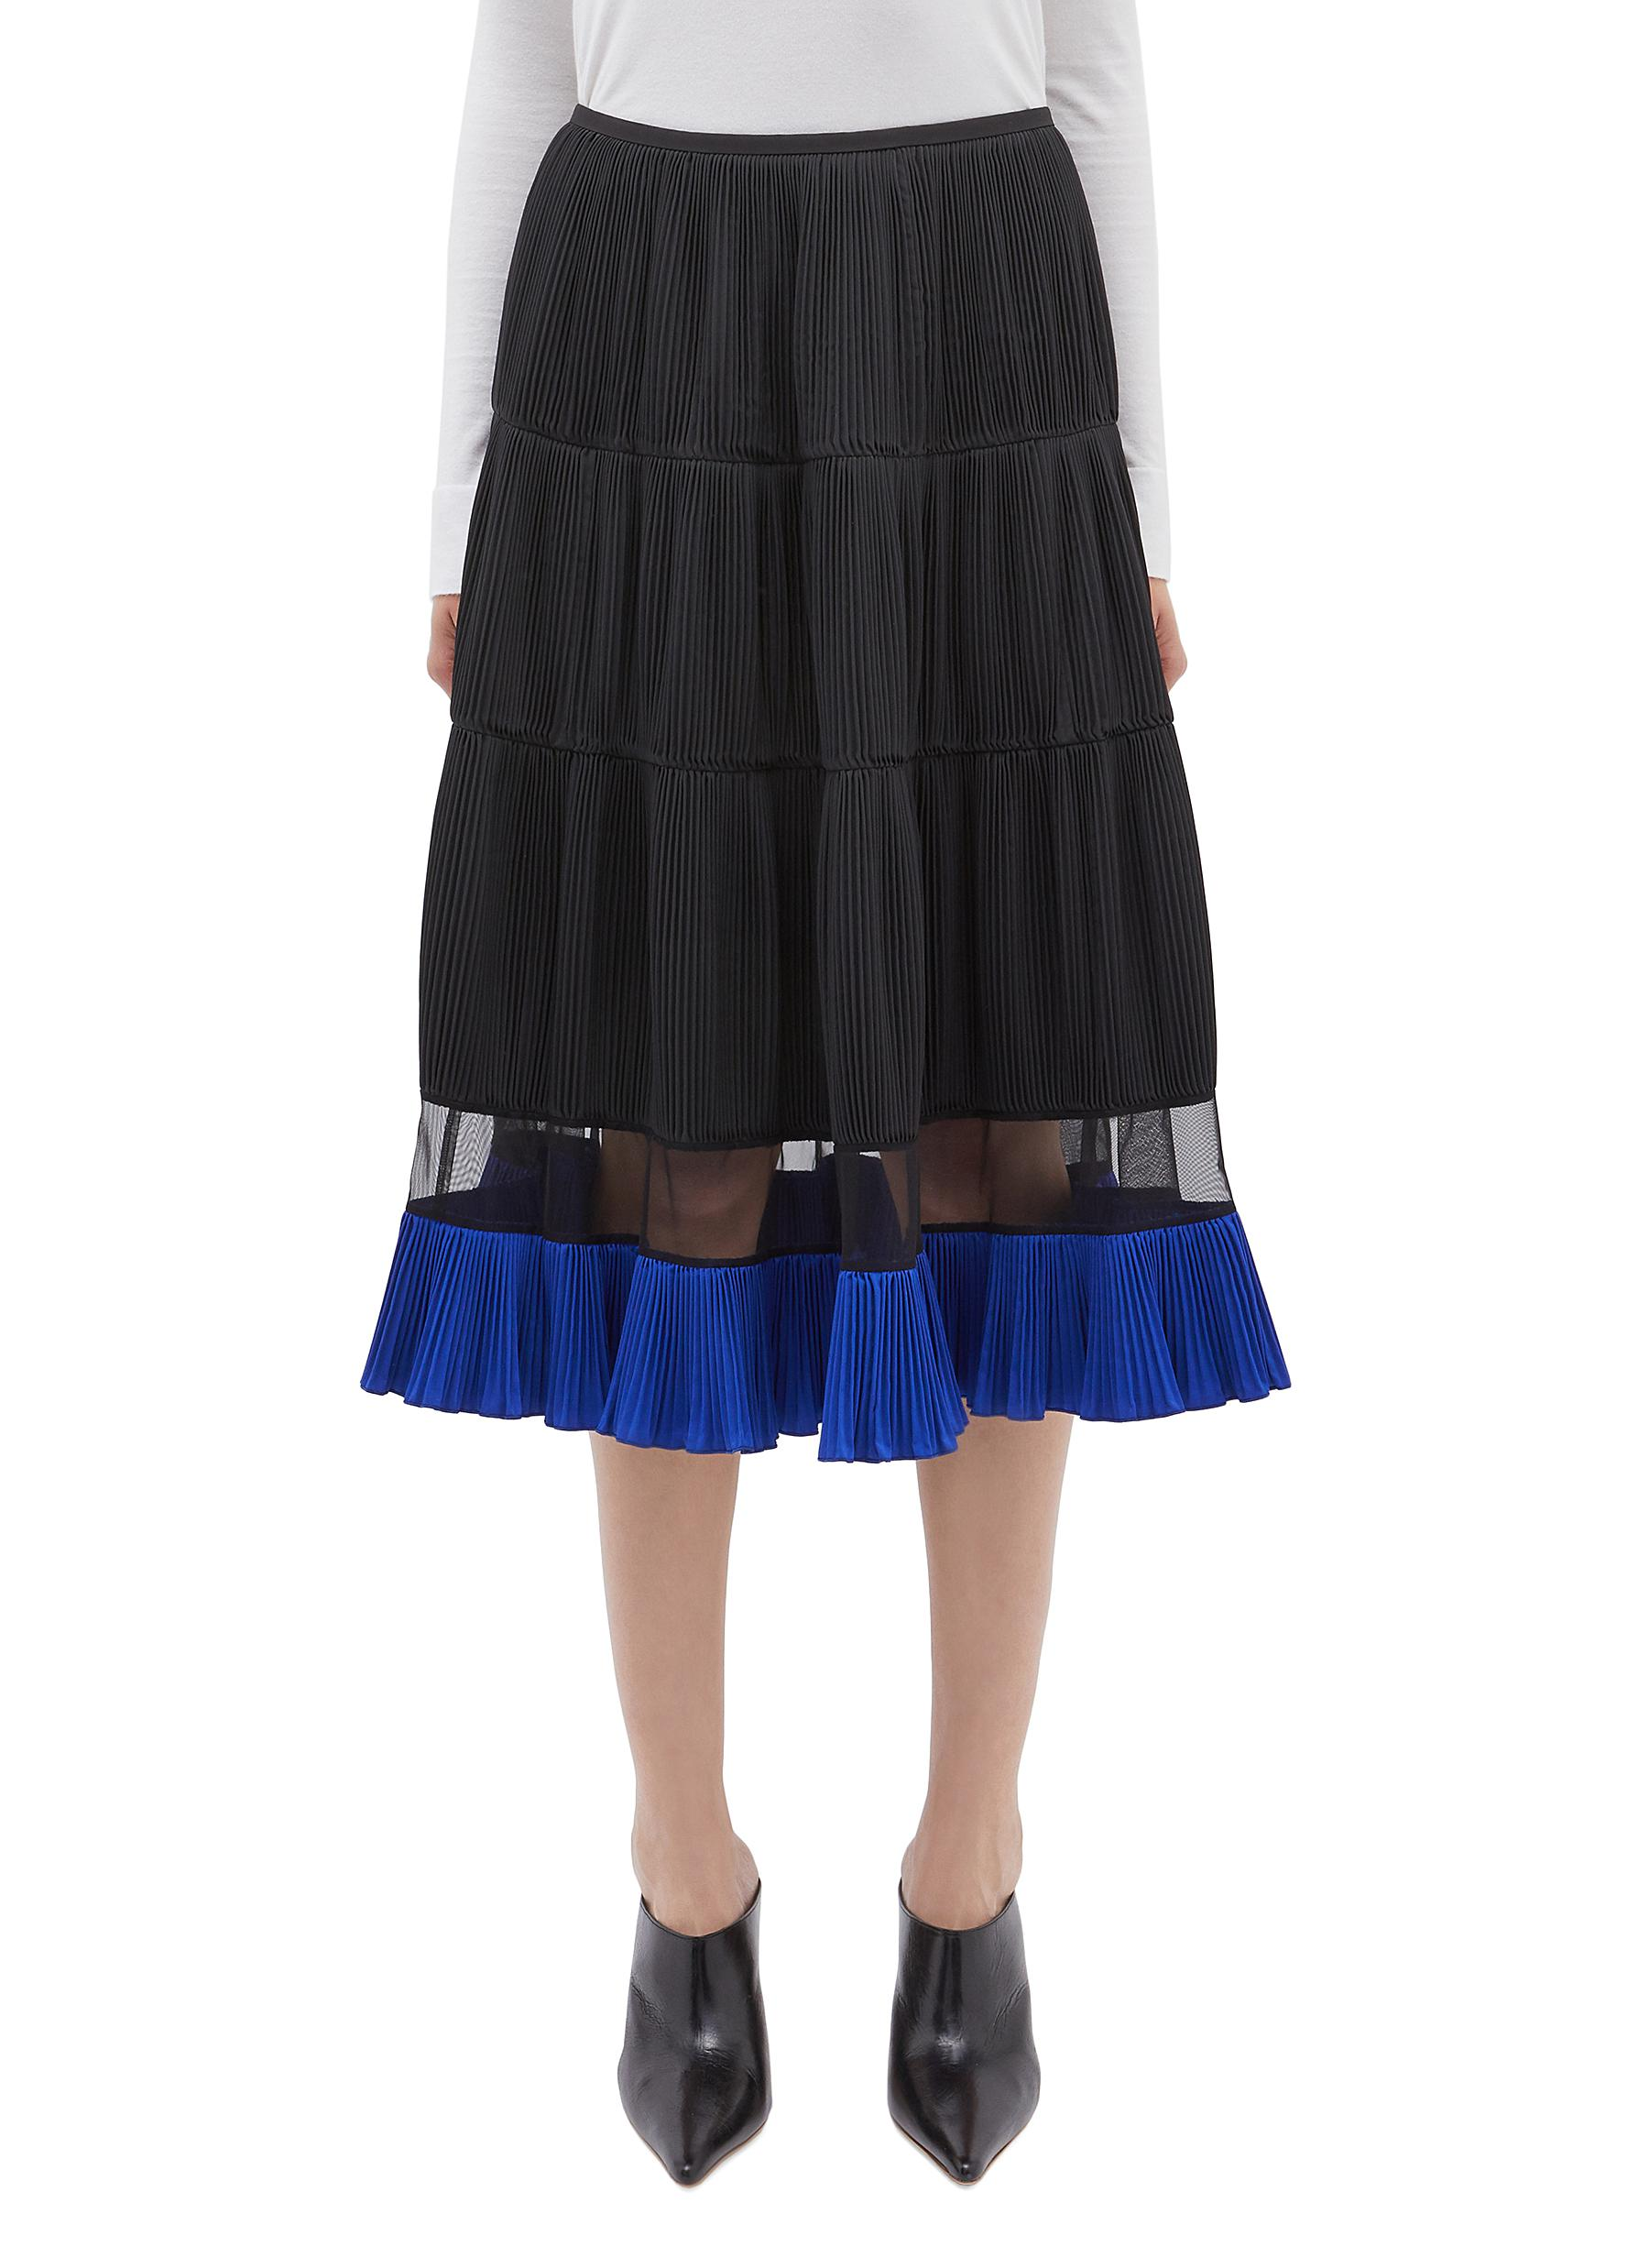 Colourblock hem mesh panel pleated herringbone skirt by Toga Archives